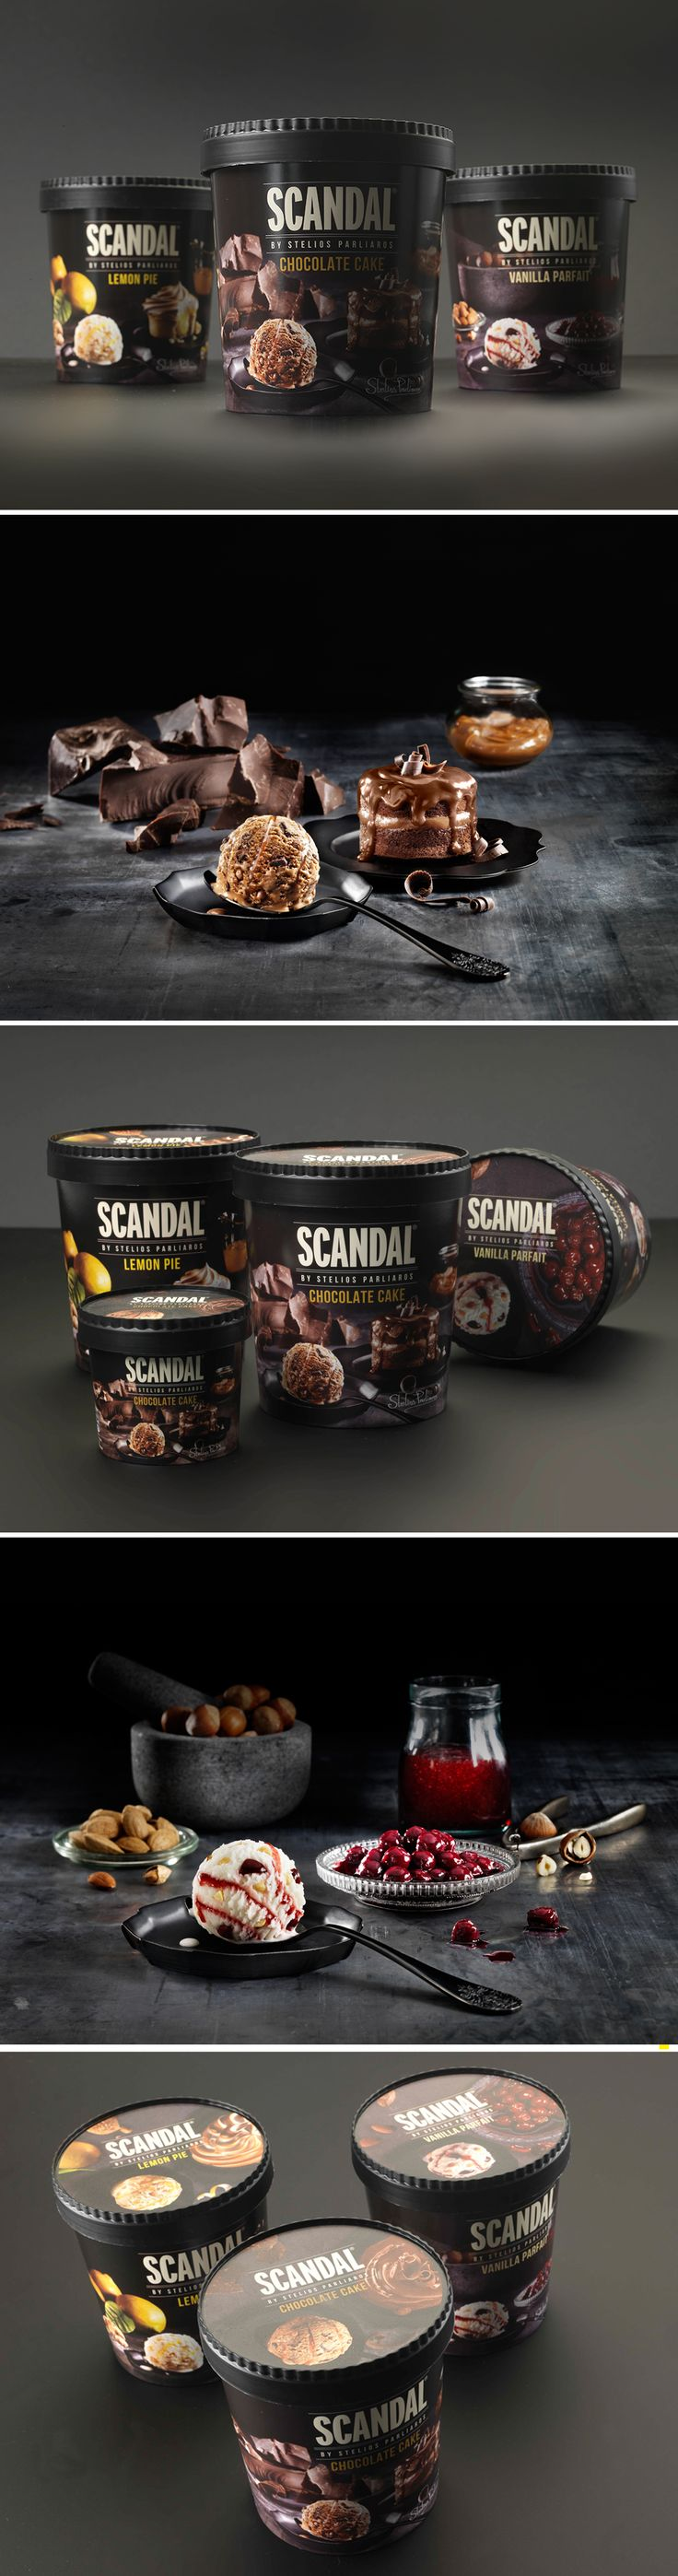 New visual identity & packaging design for Pummaro pasta sauces by 2yolk.